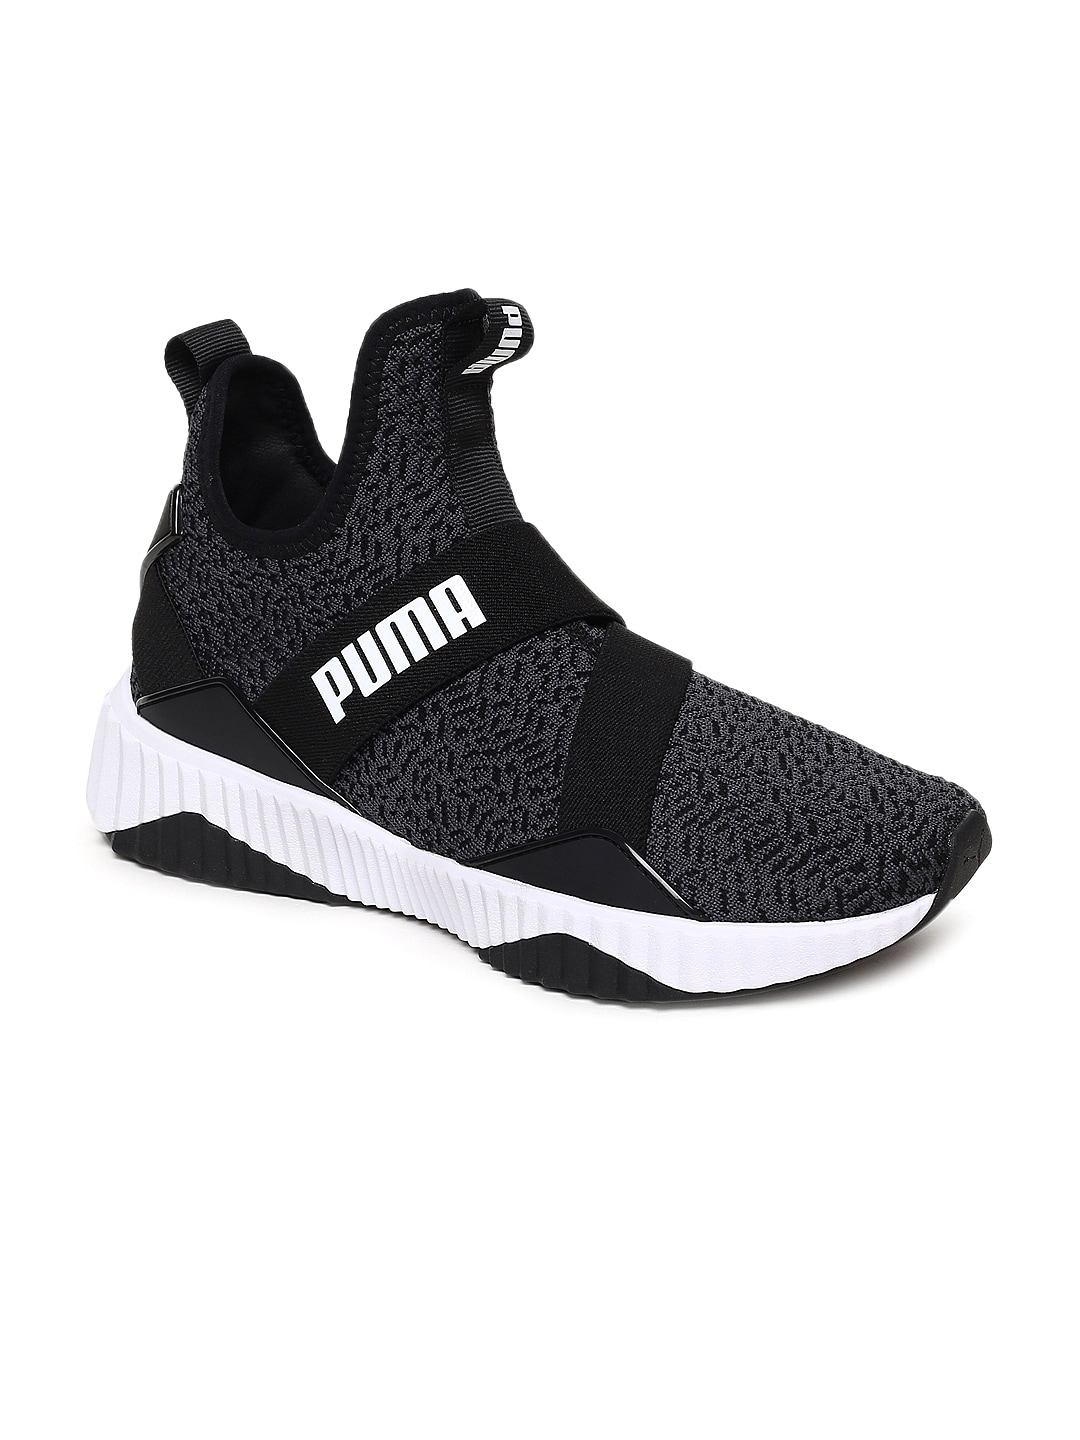 c965e144a1ea Puma Shoes - Buy Puma Shoes for Men   Women Online in India